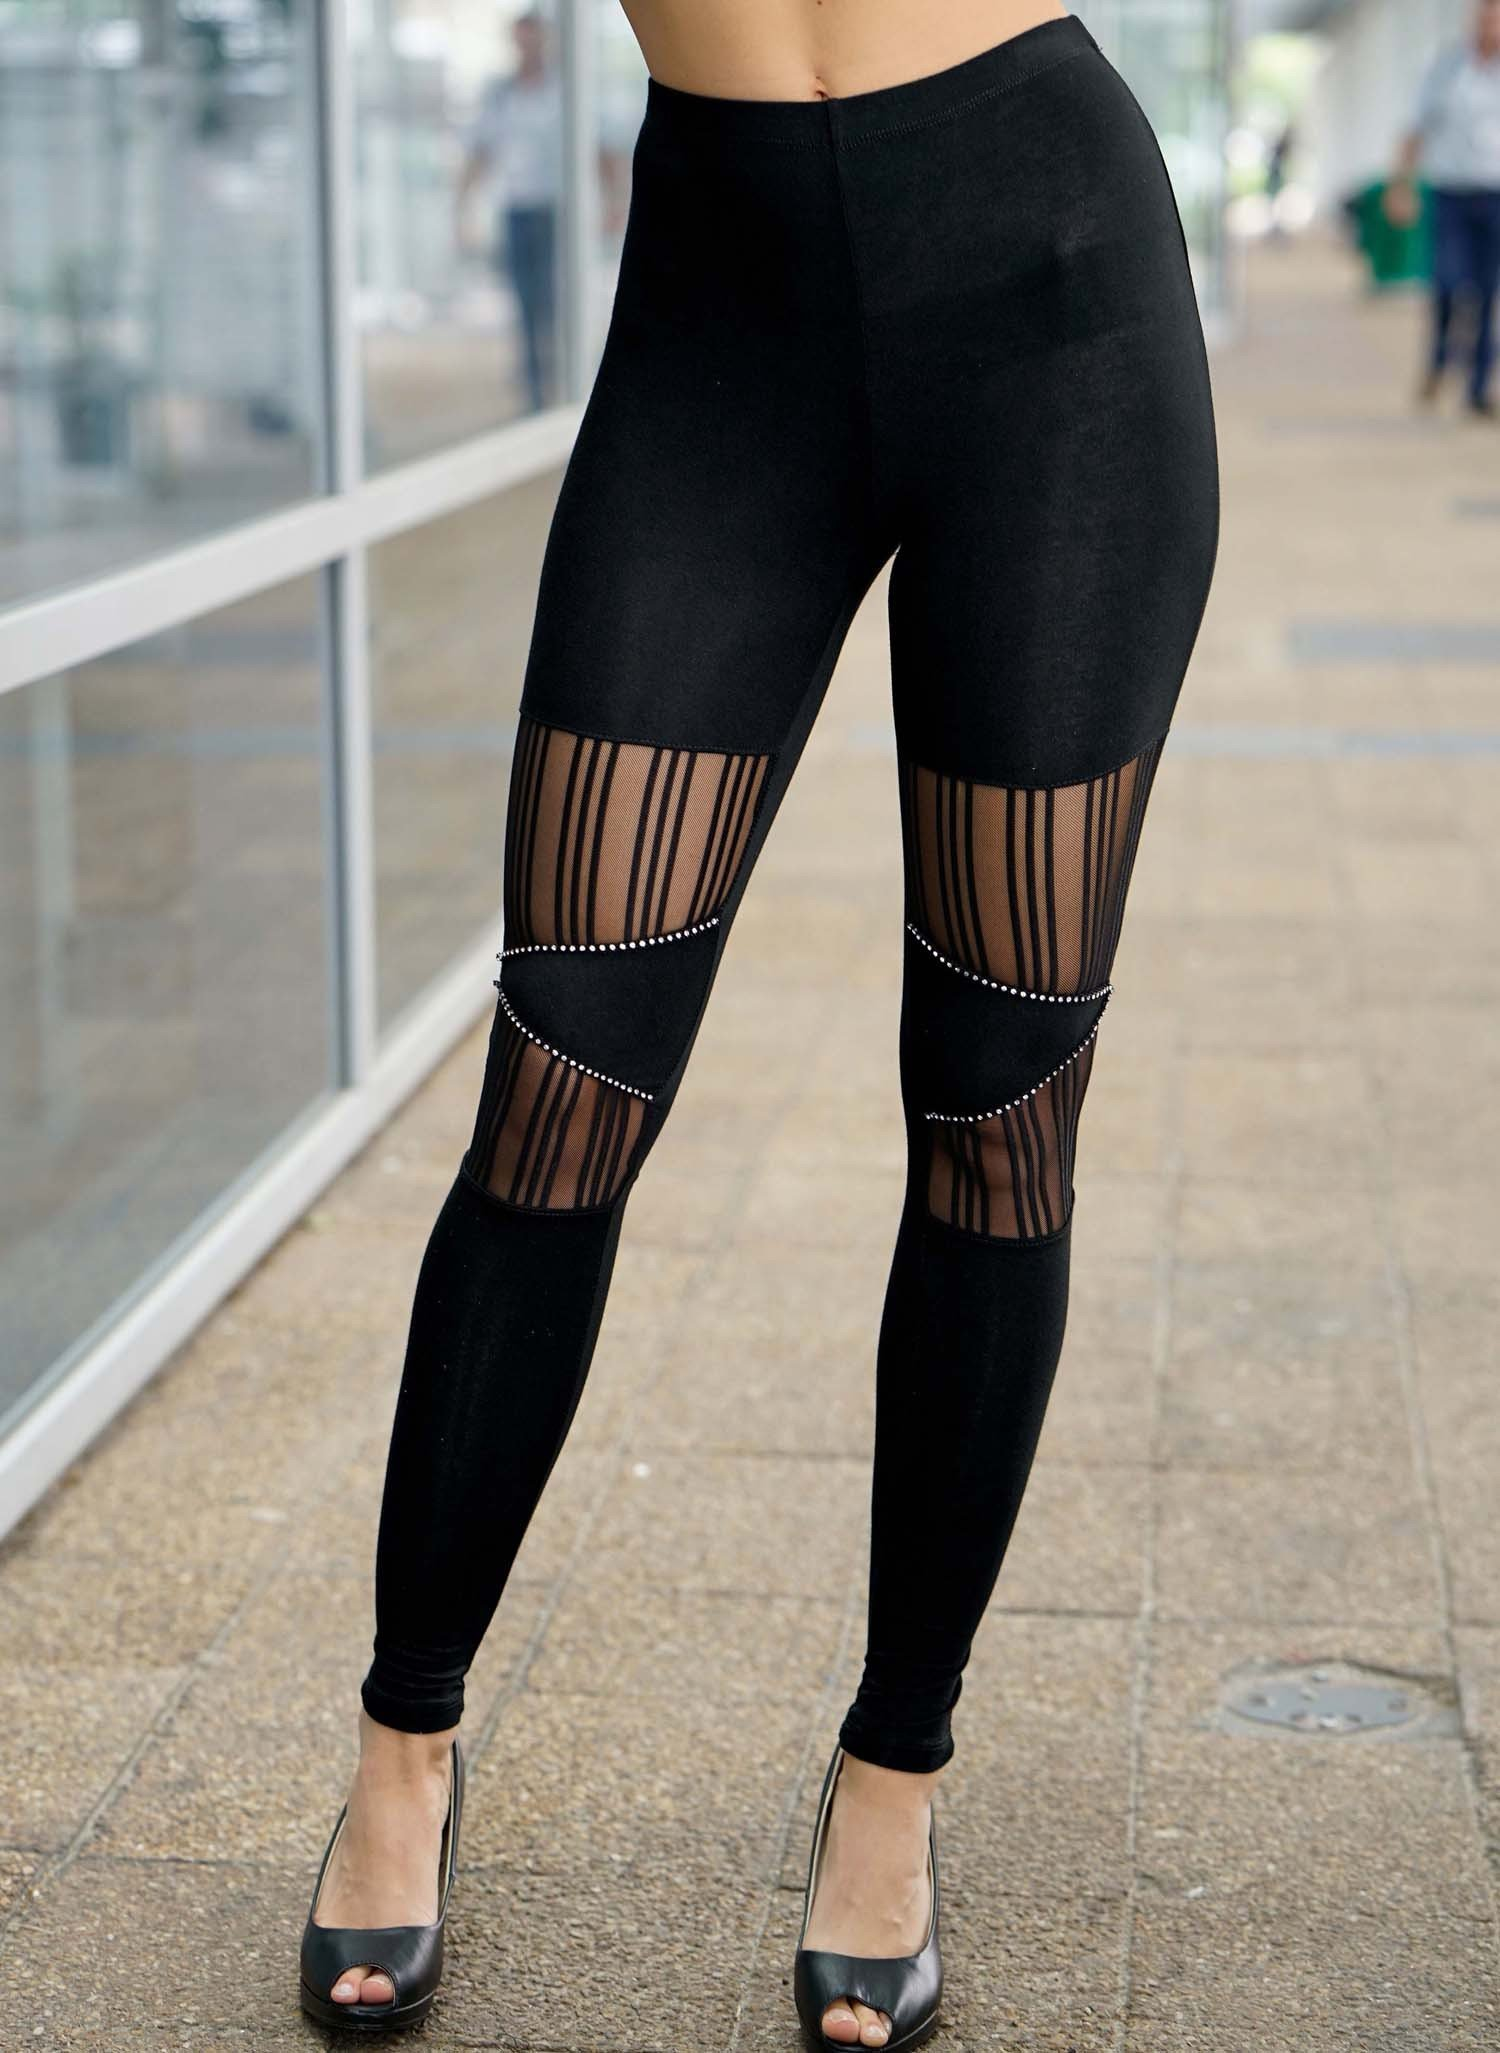 D-Cockt.-Leggings,Strass schw. L 010 - 1 - Ronja.ch